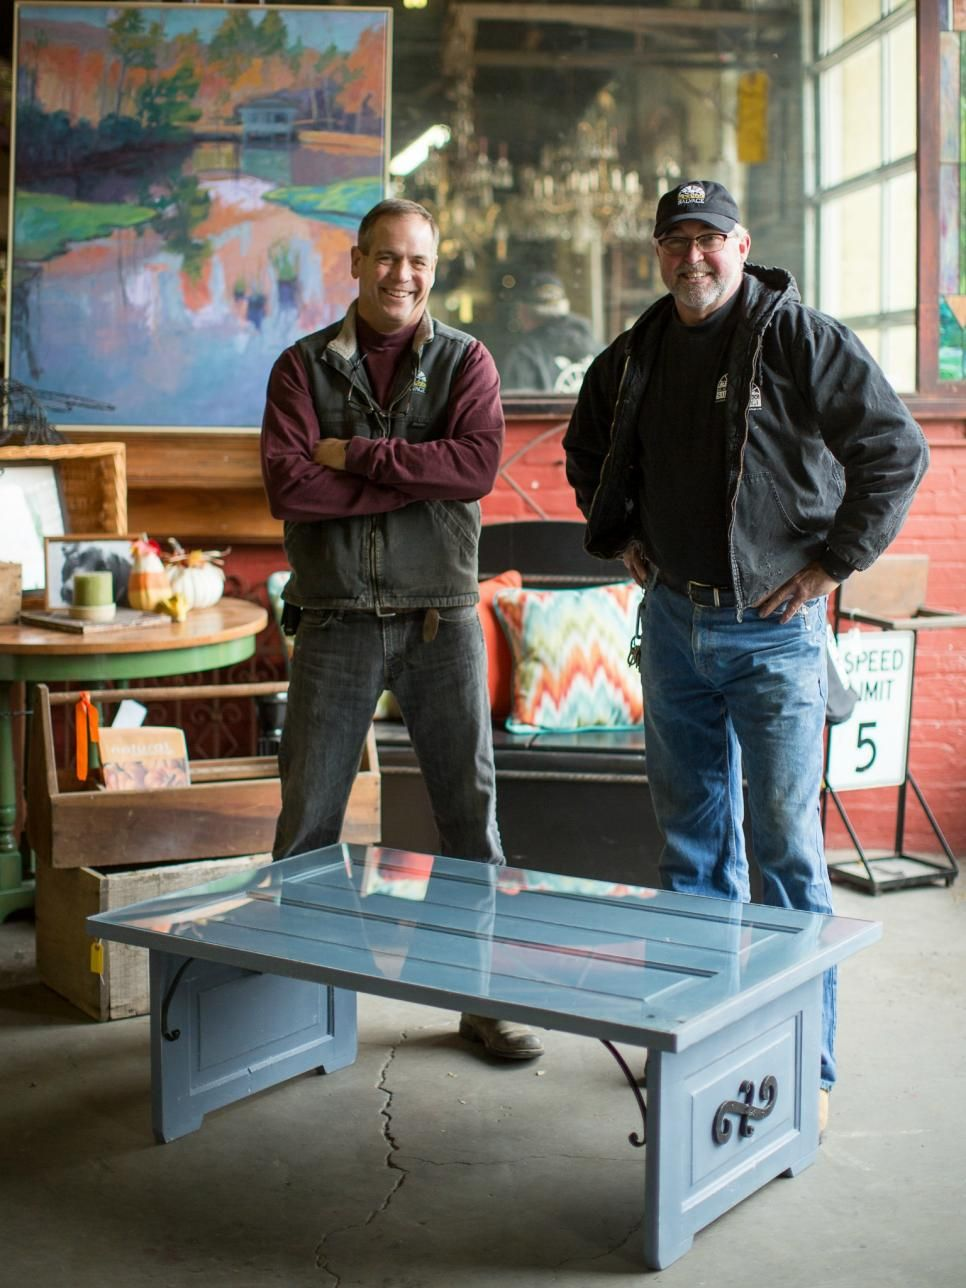 19 Upcycling Projects From Salvage Dawgs Diy Home Decor Repurposed Furniture Upcycle Salvage Dogs